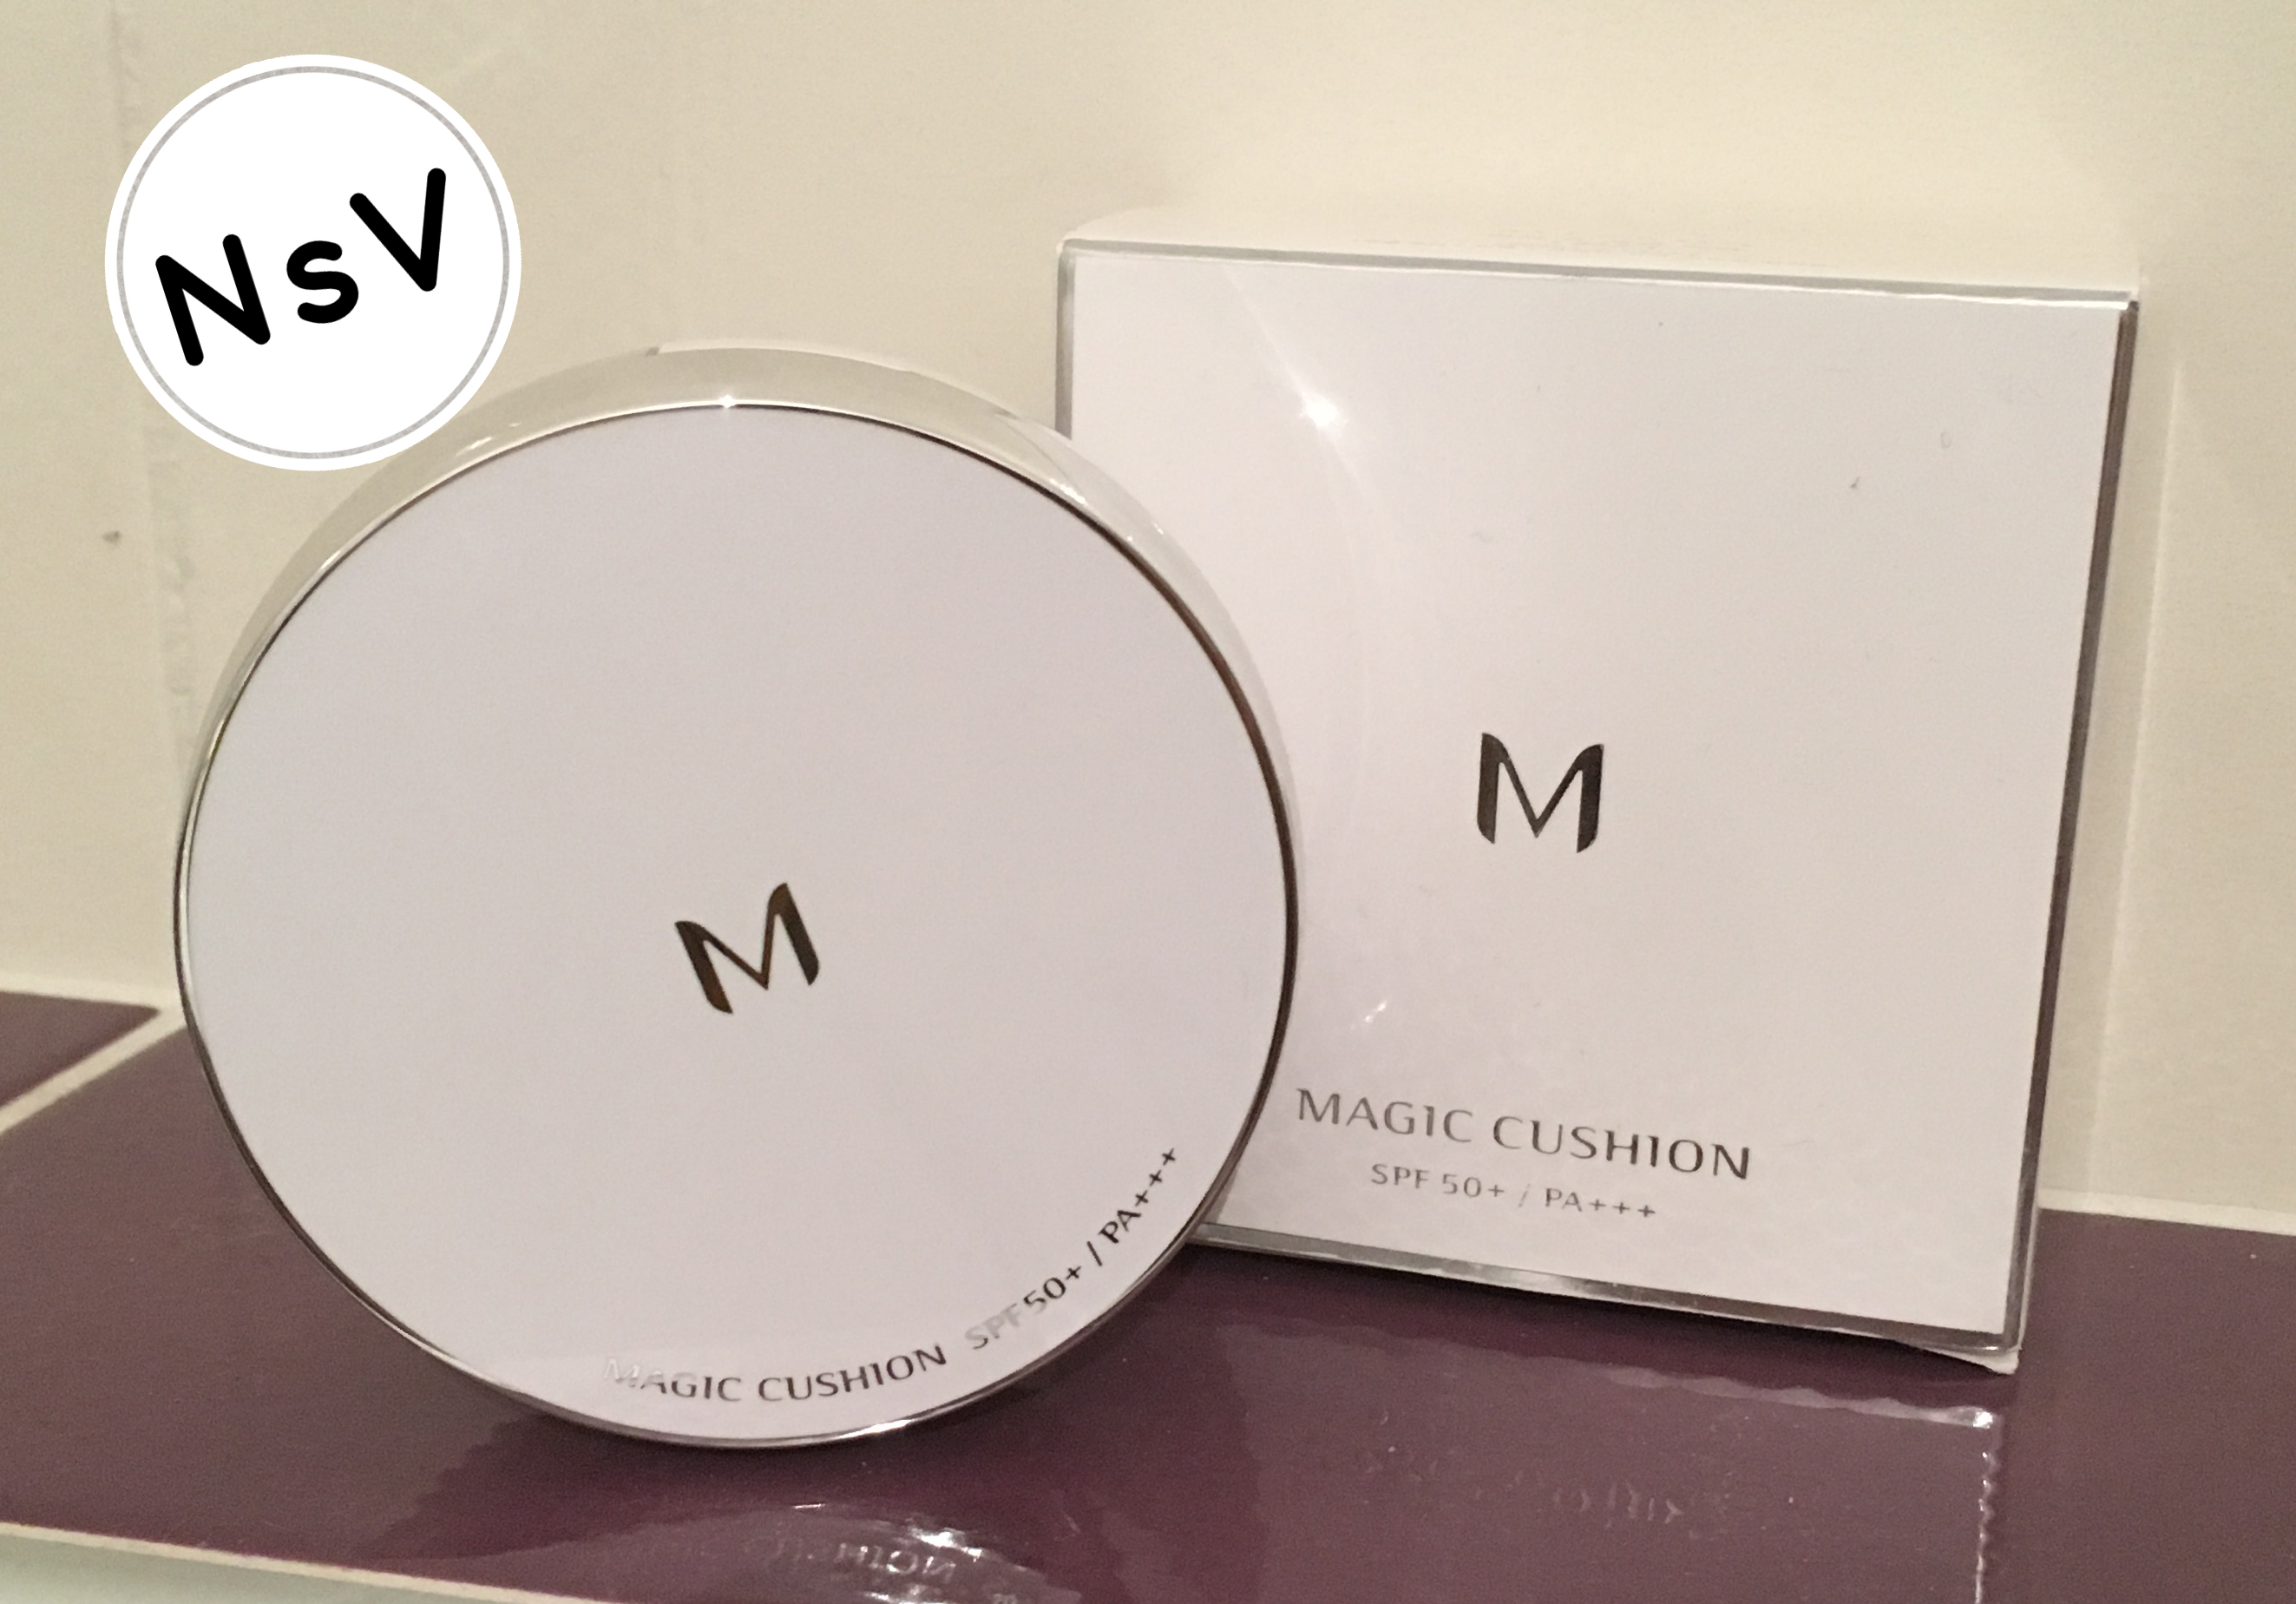 Missha - Magic cushion